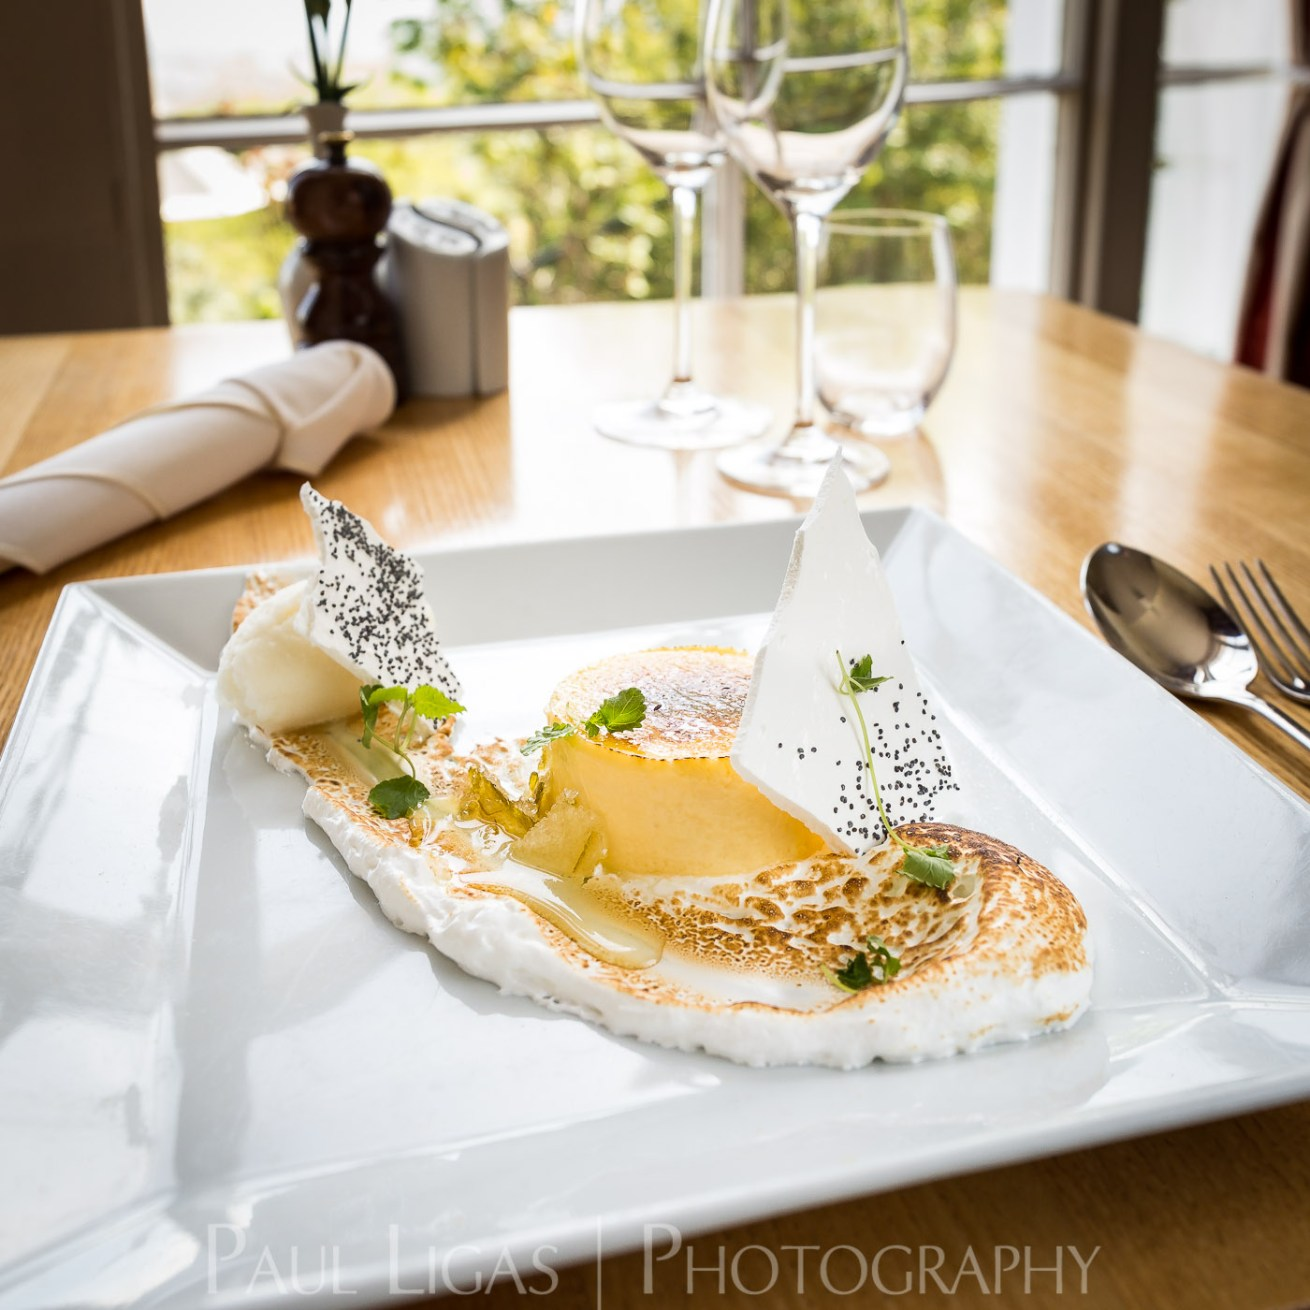 The Cottage In The Wood, Malvern, Worcestershire food photographer Herefordshire photography 7770